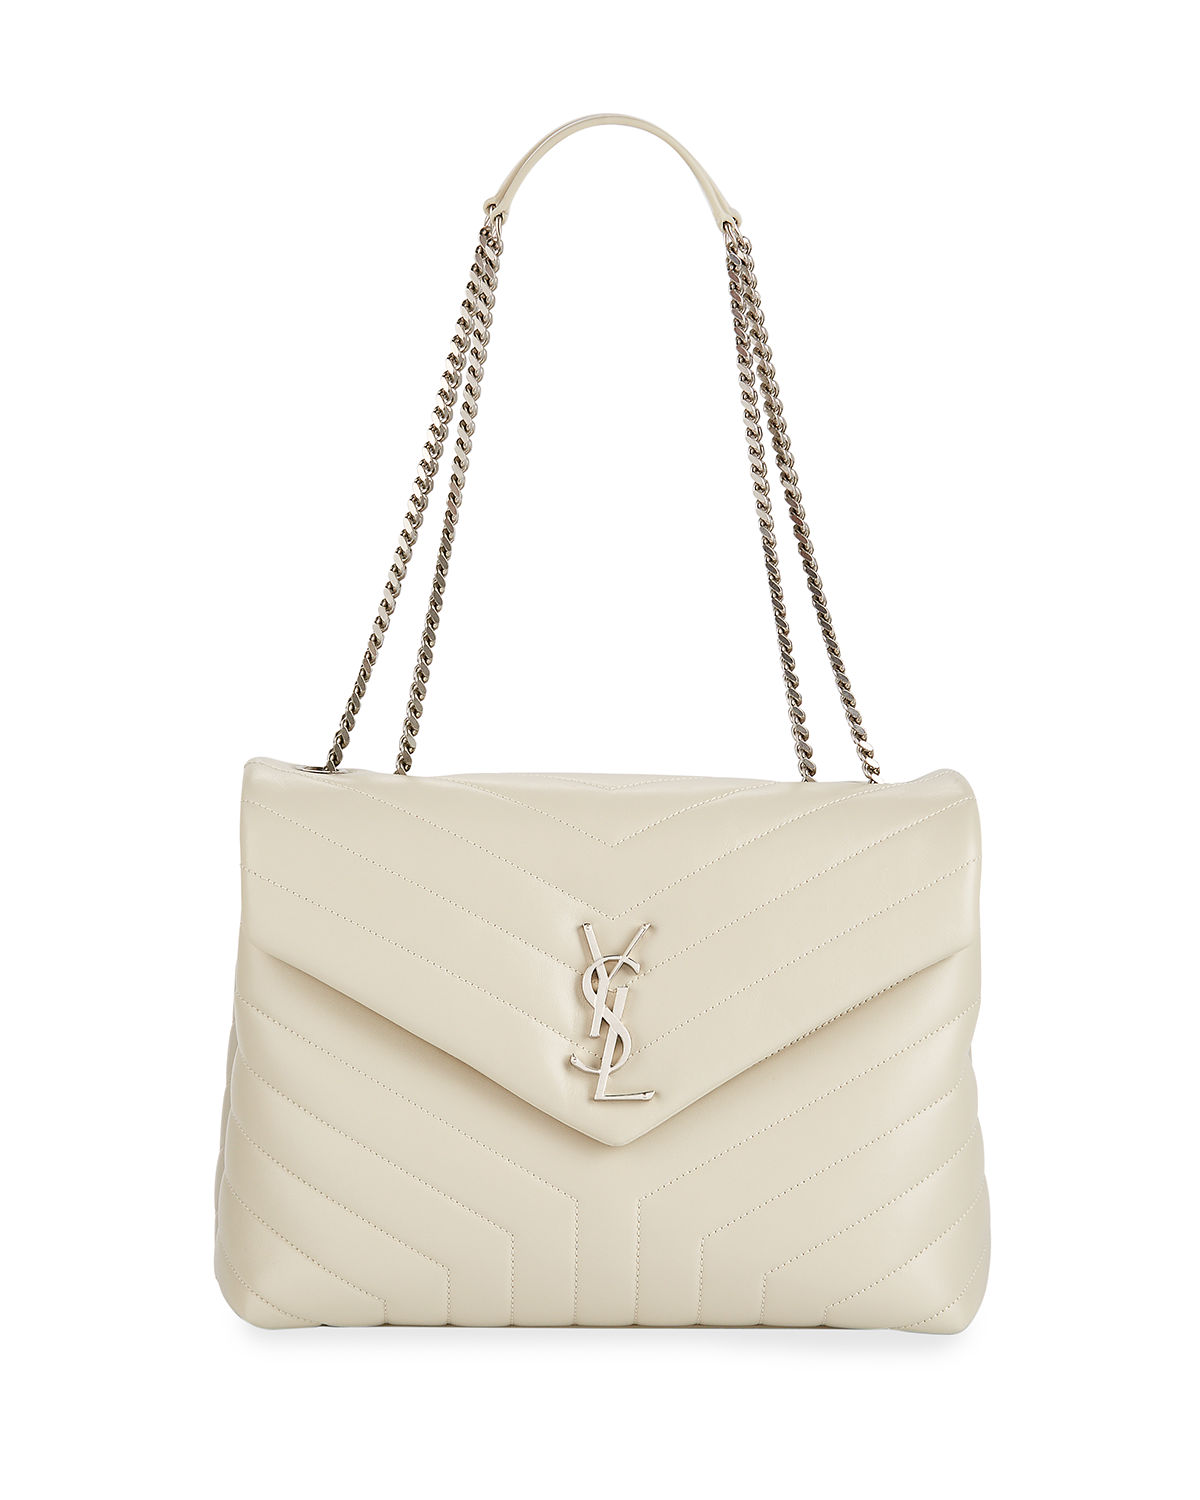 Saint Laurent Loulou Monogram YSL Medium Chain Shoulder Bag   Neiman ... 8d3f31fa03